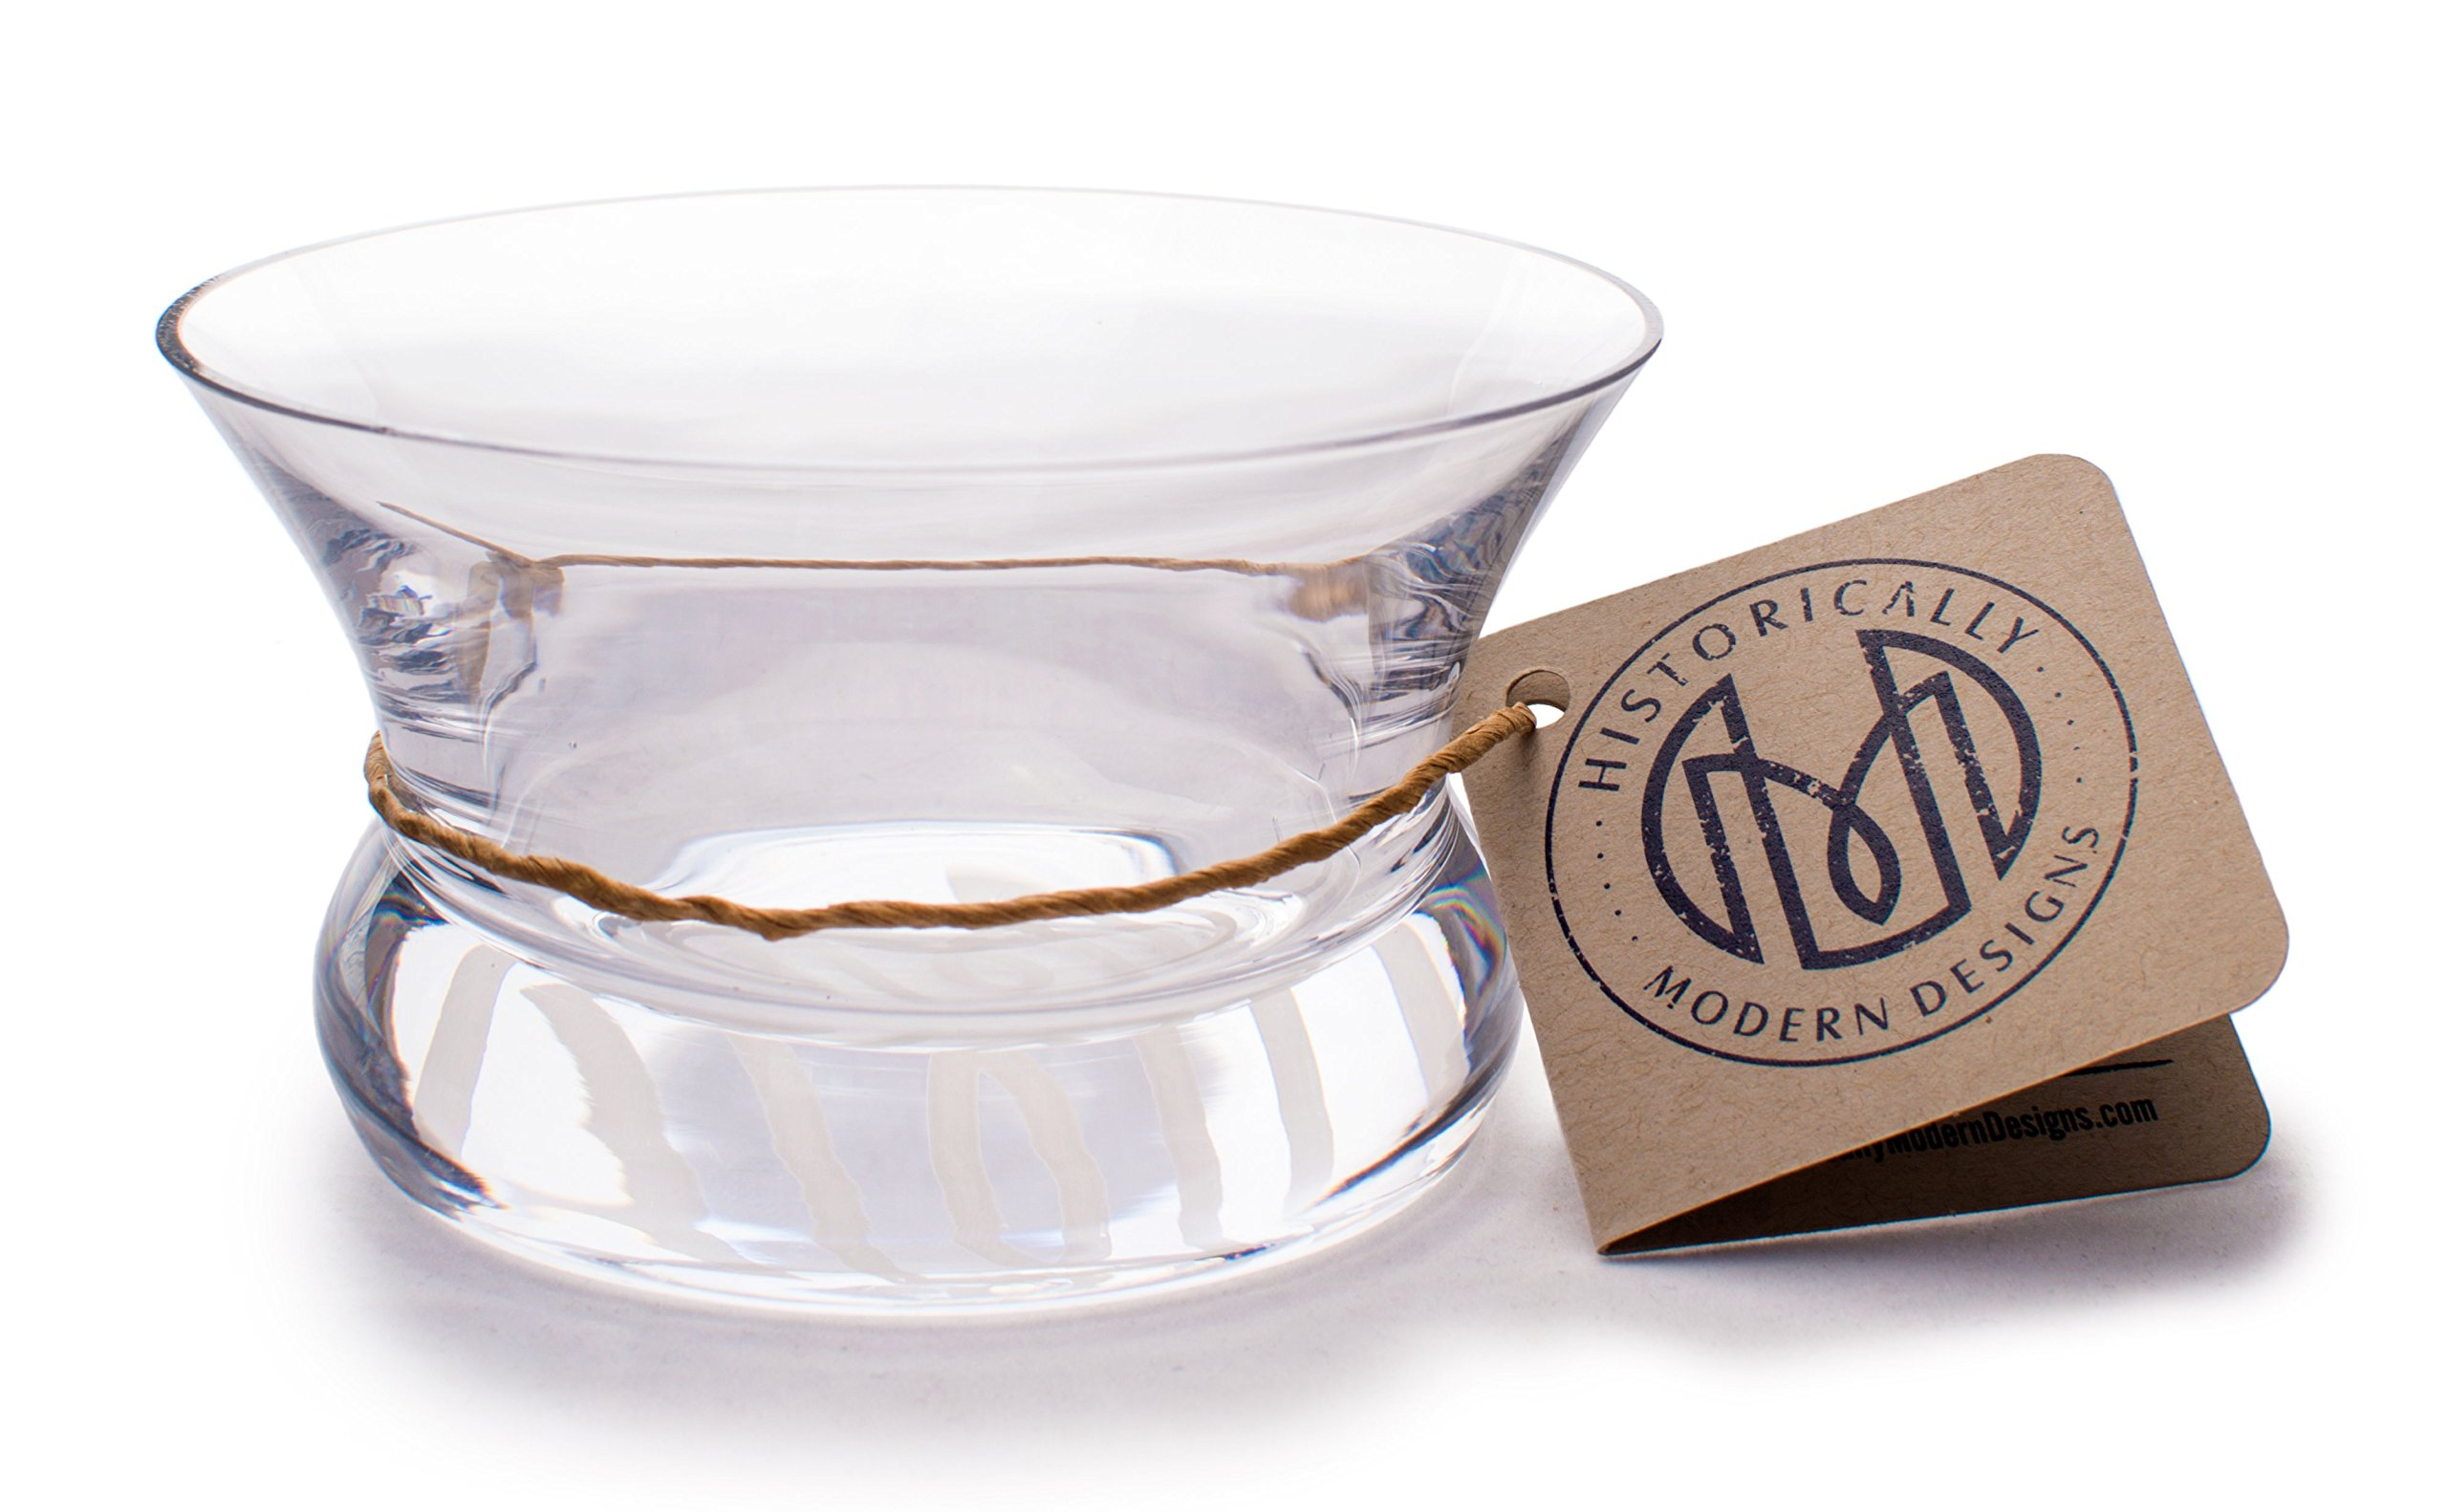 Tequila Glasses By Historically Modern Designs - SET OF 2 by Historically Modern Designs